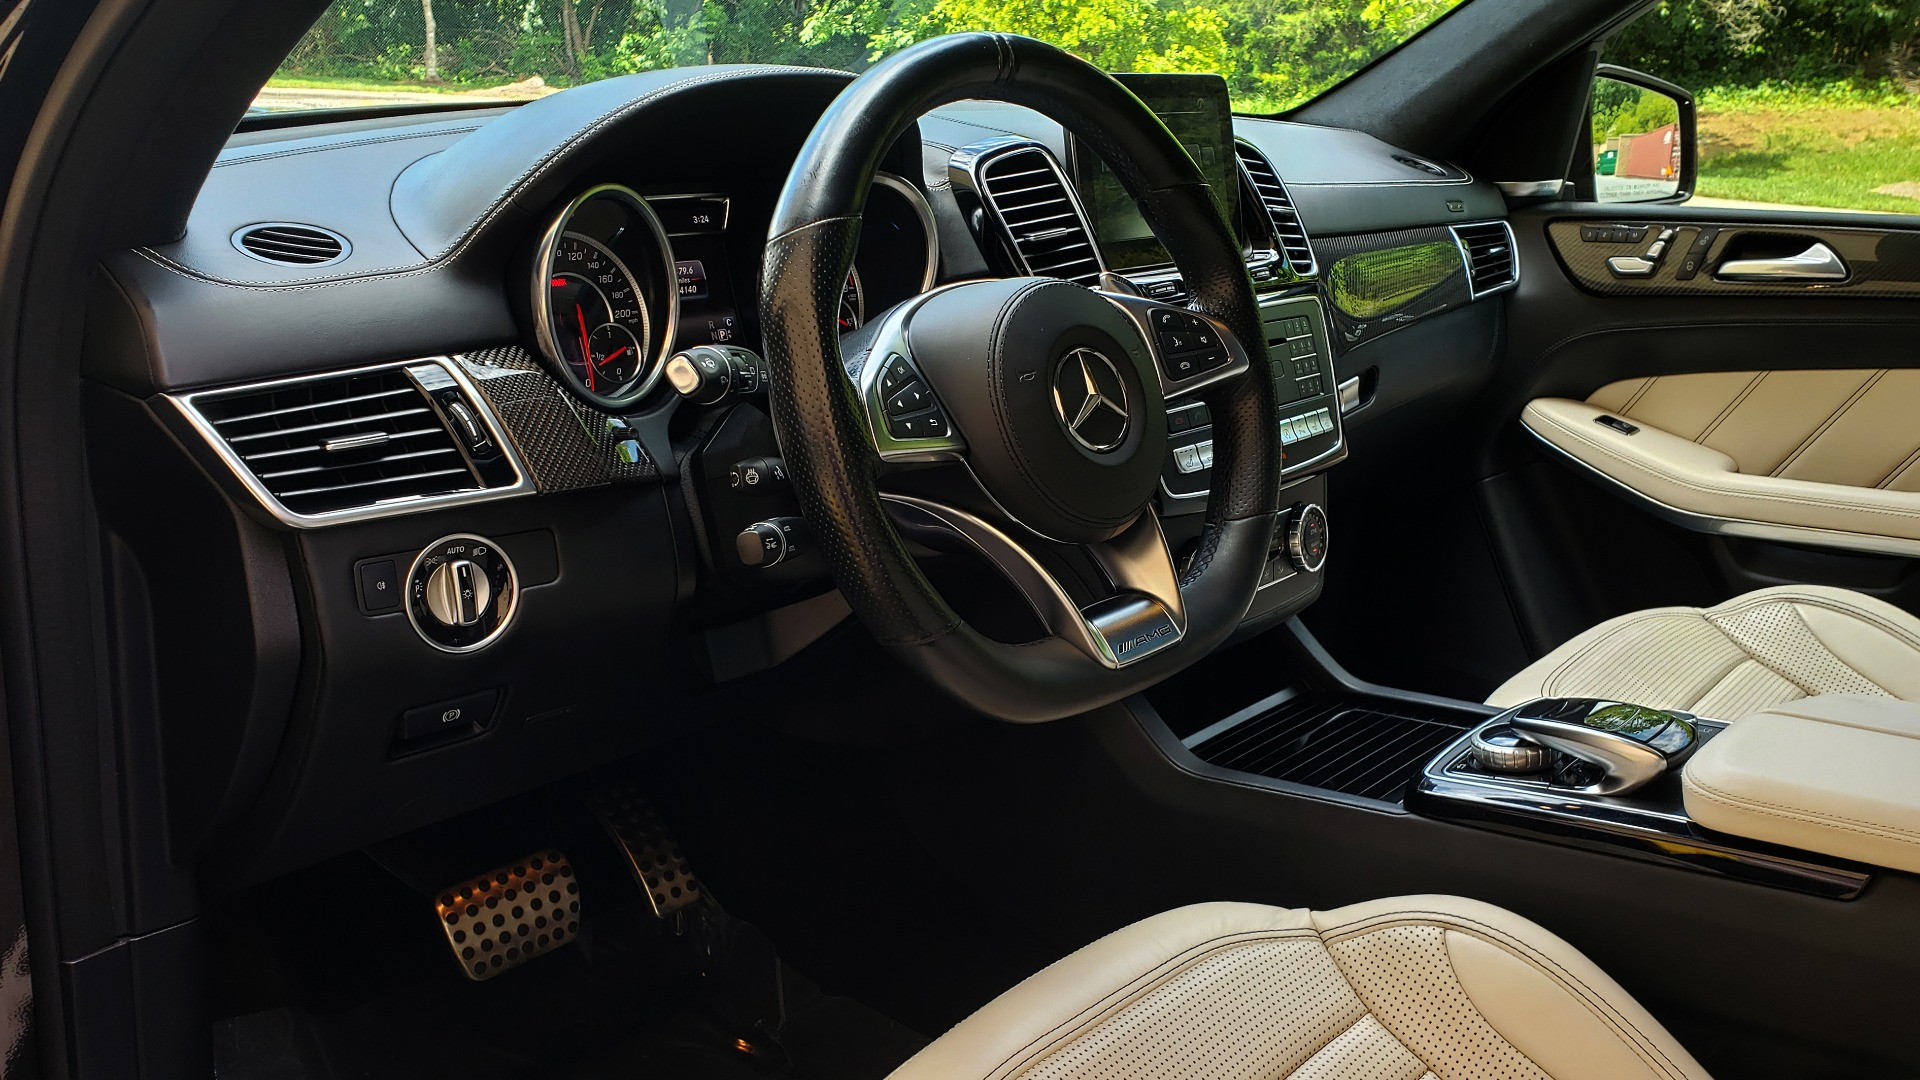 Used 2017 Mercedes-Benz GLS 63 AMG 4MATIC / NAV / SUNROOF / 3-ROW / REARVIEW for sale Sold at Formula Imports in Charlotte NC 28227 41